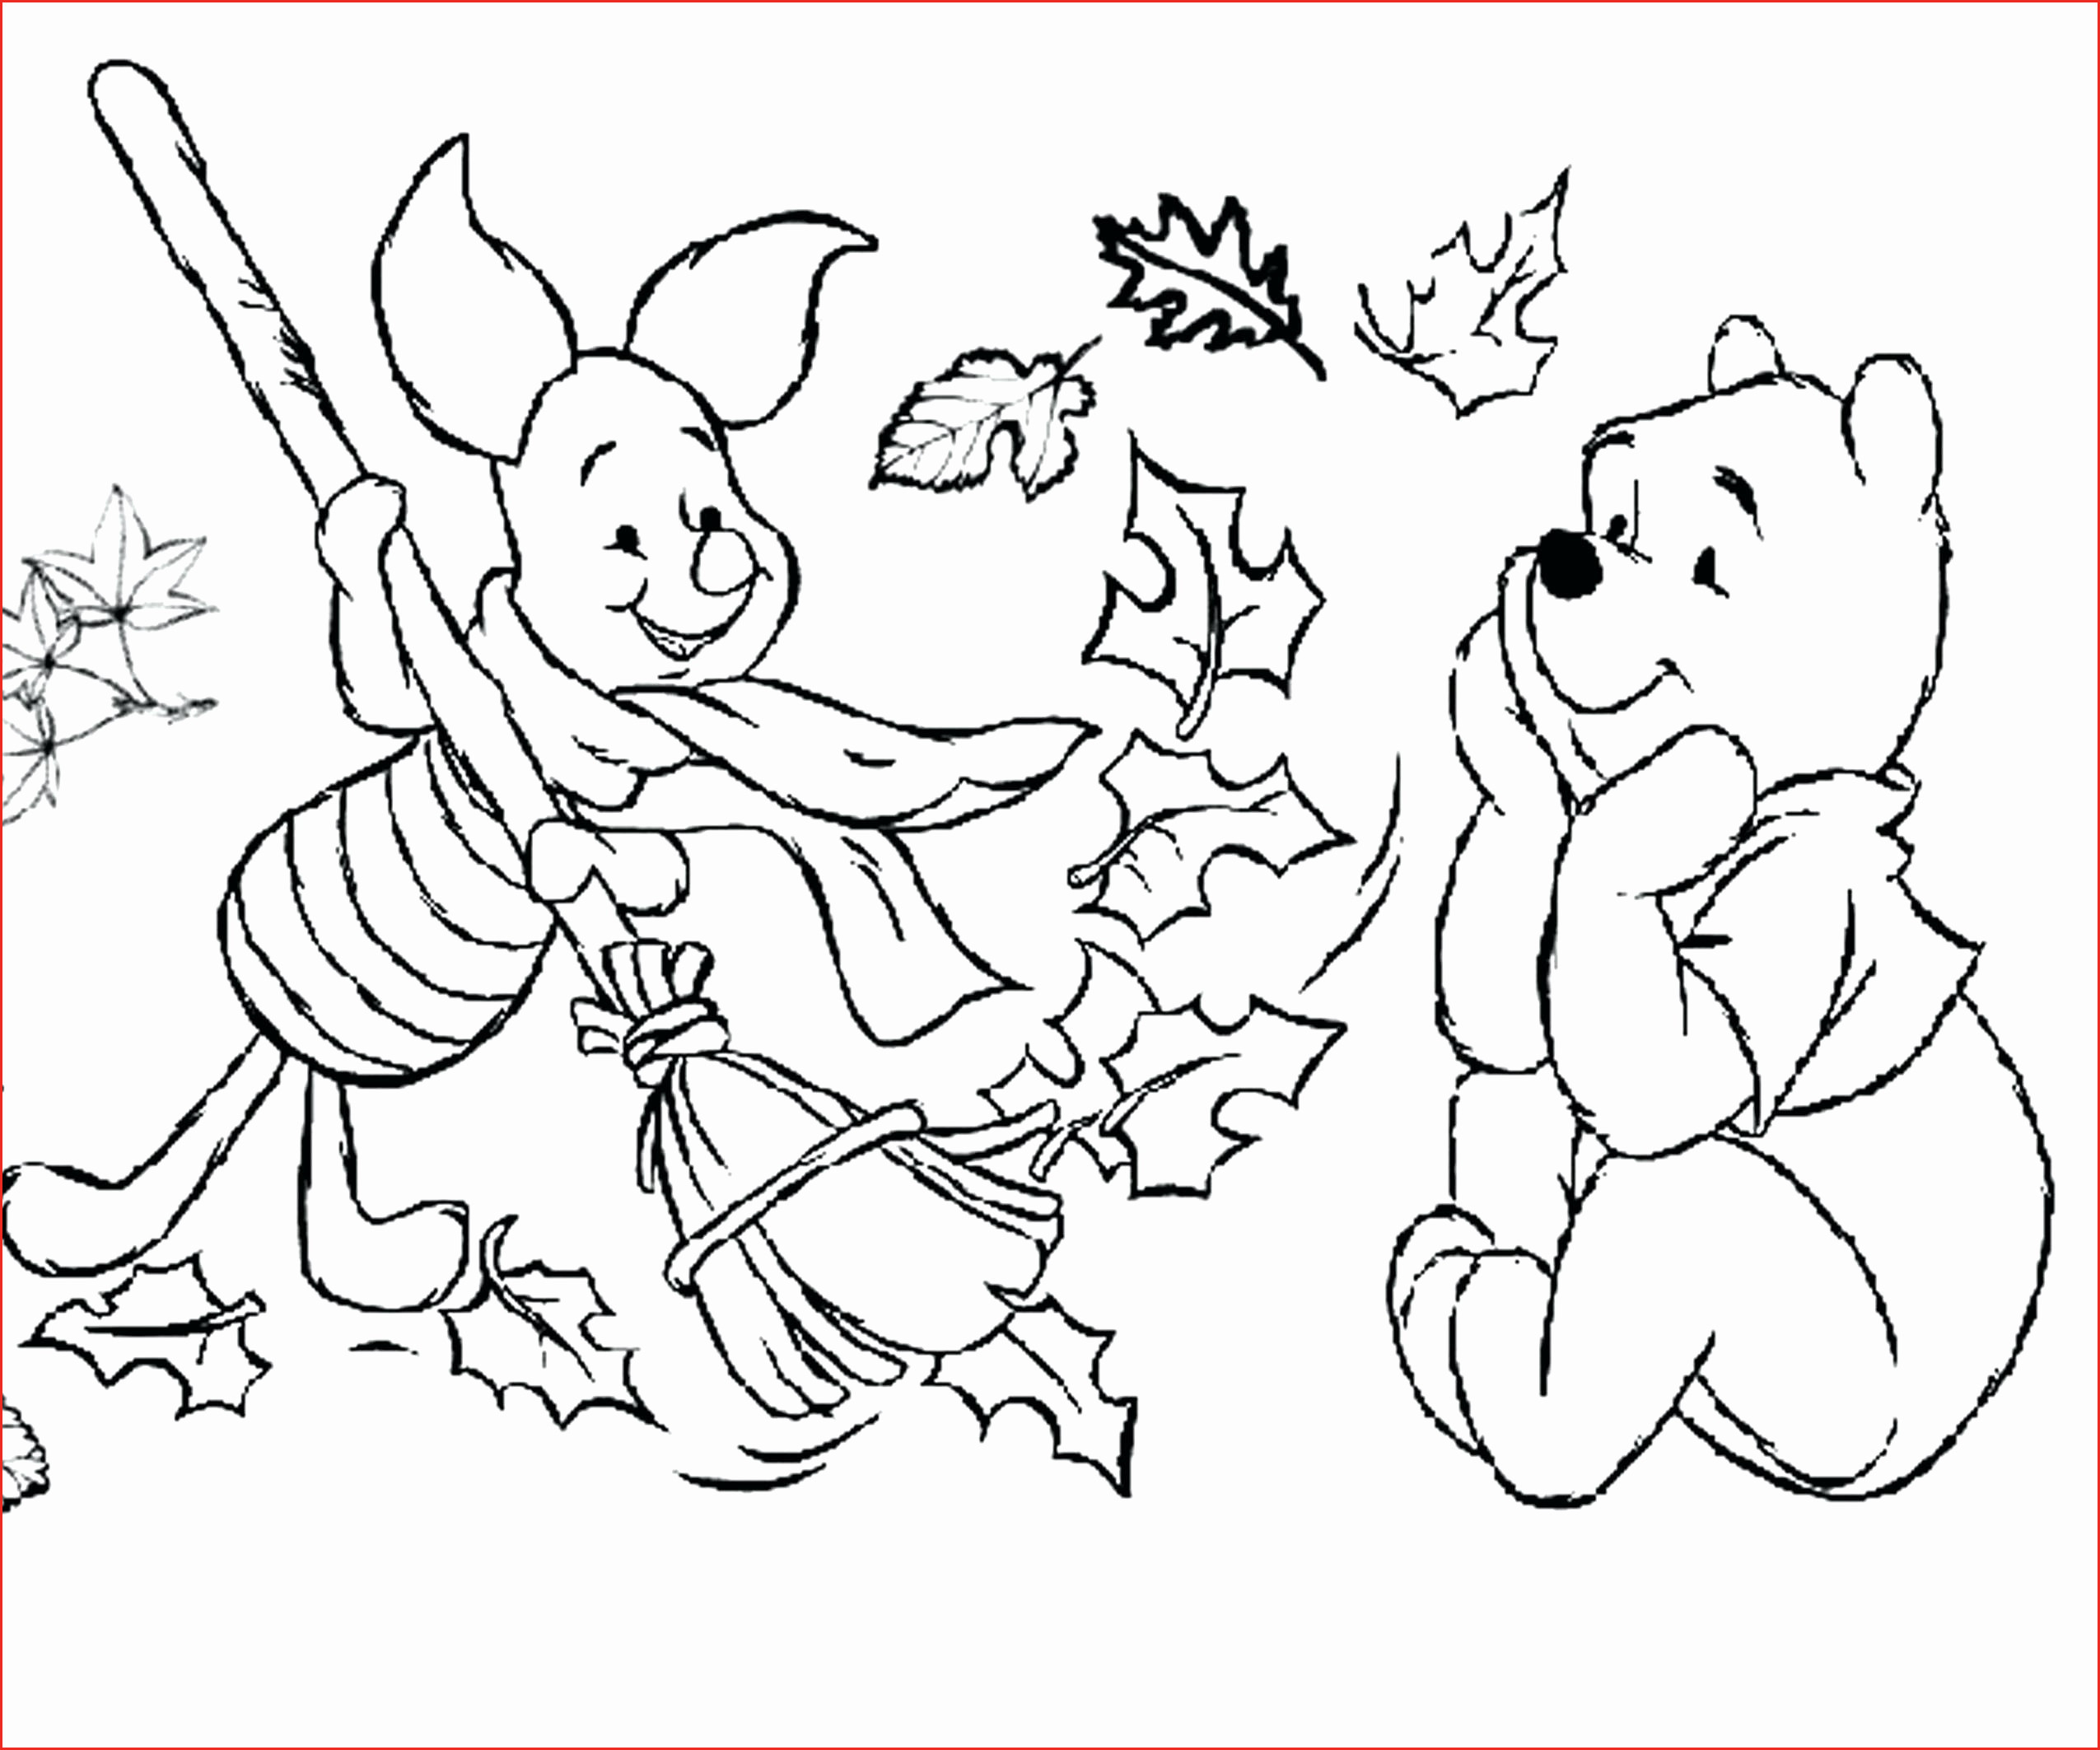 October Coloring Pages  Printable 3p - Free For Children